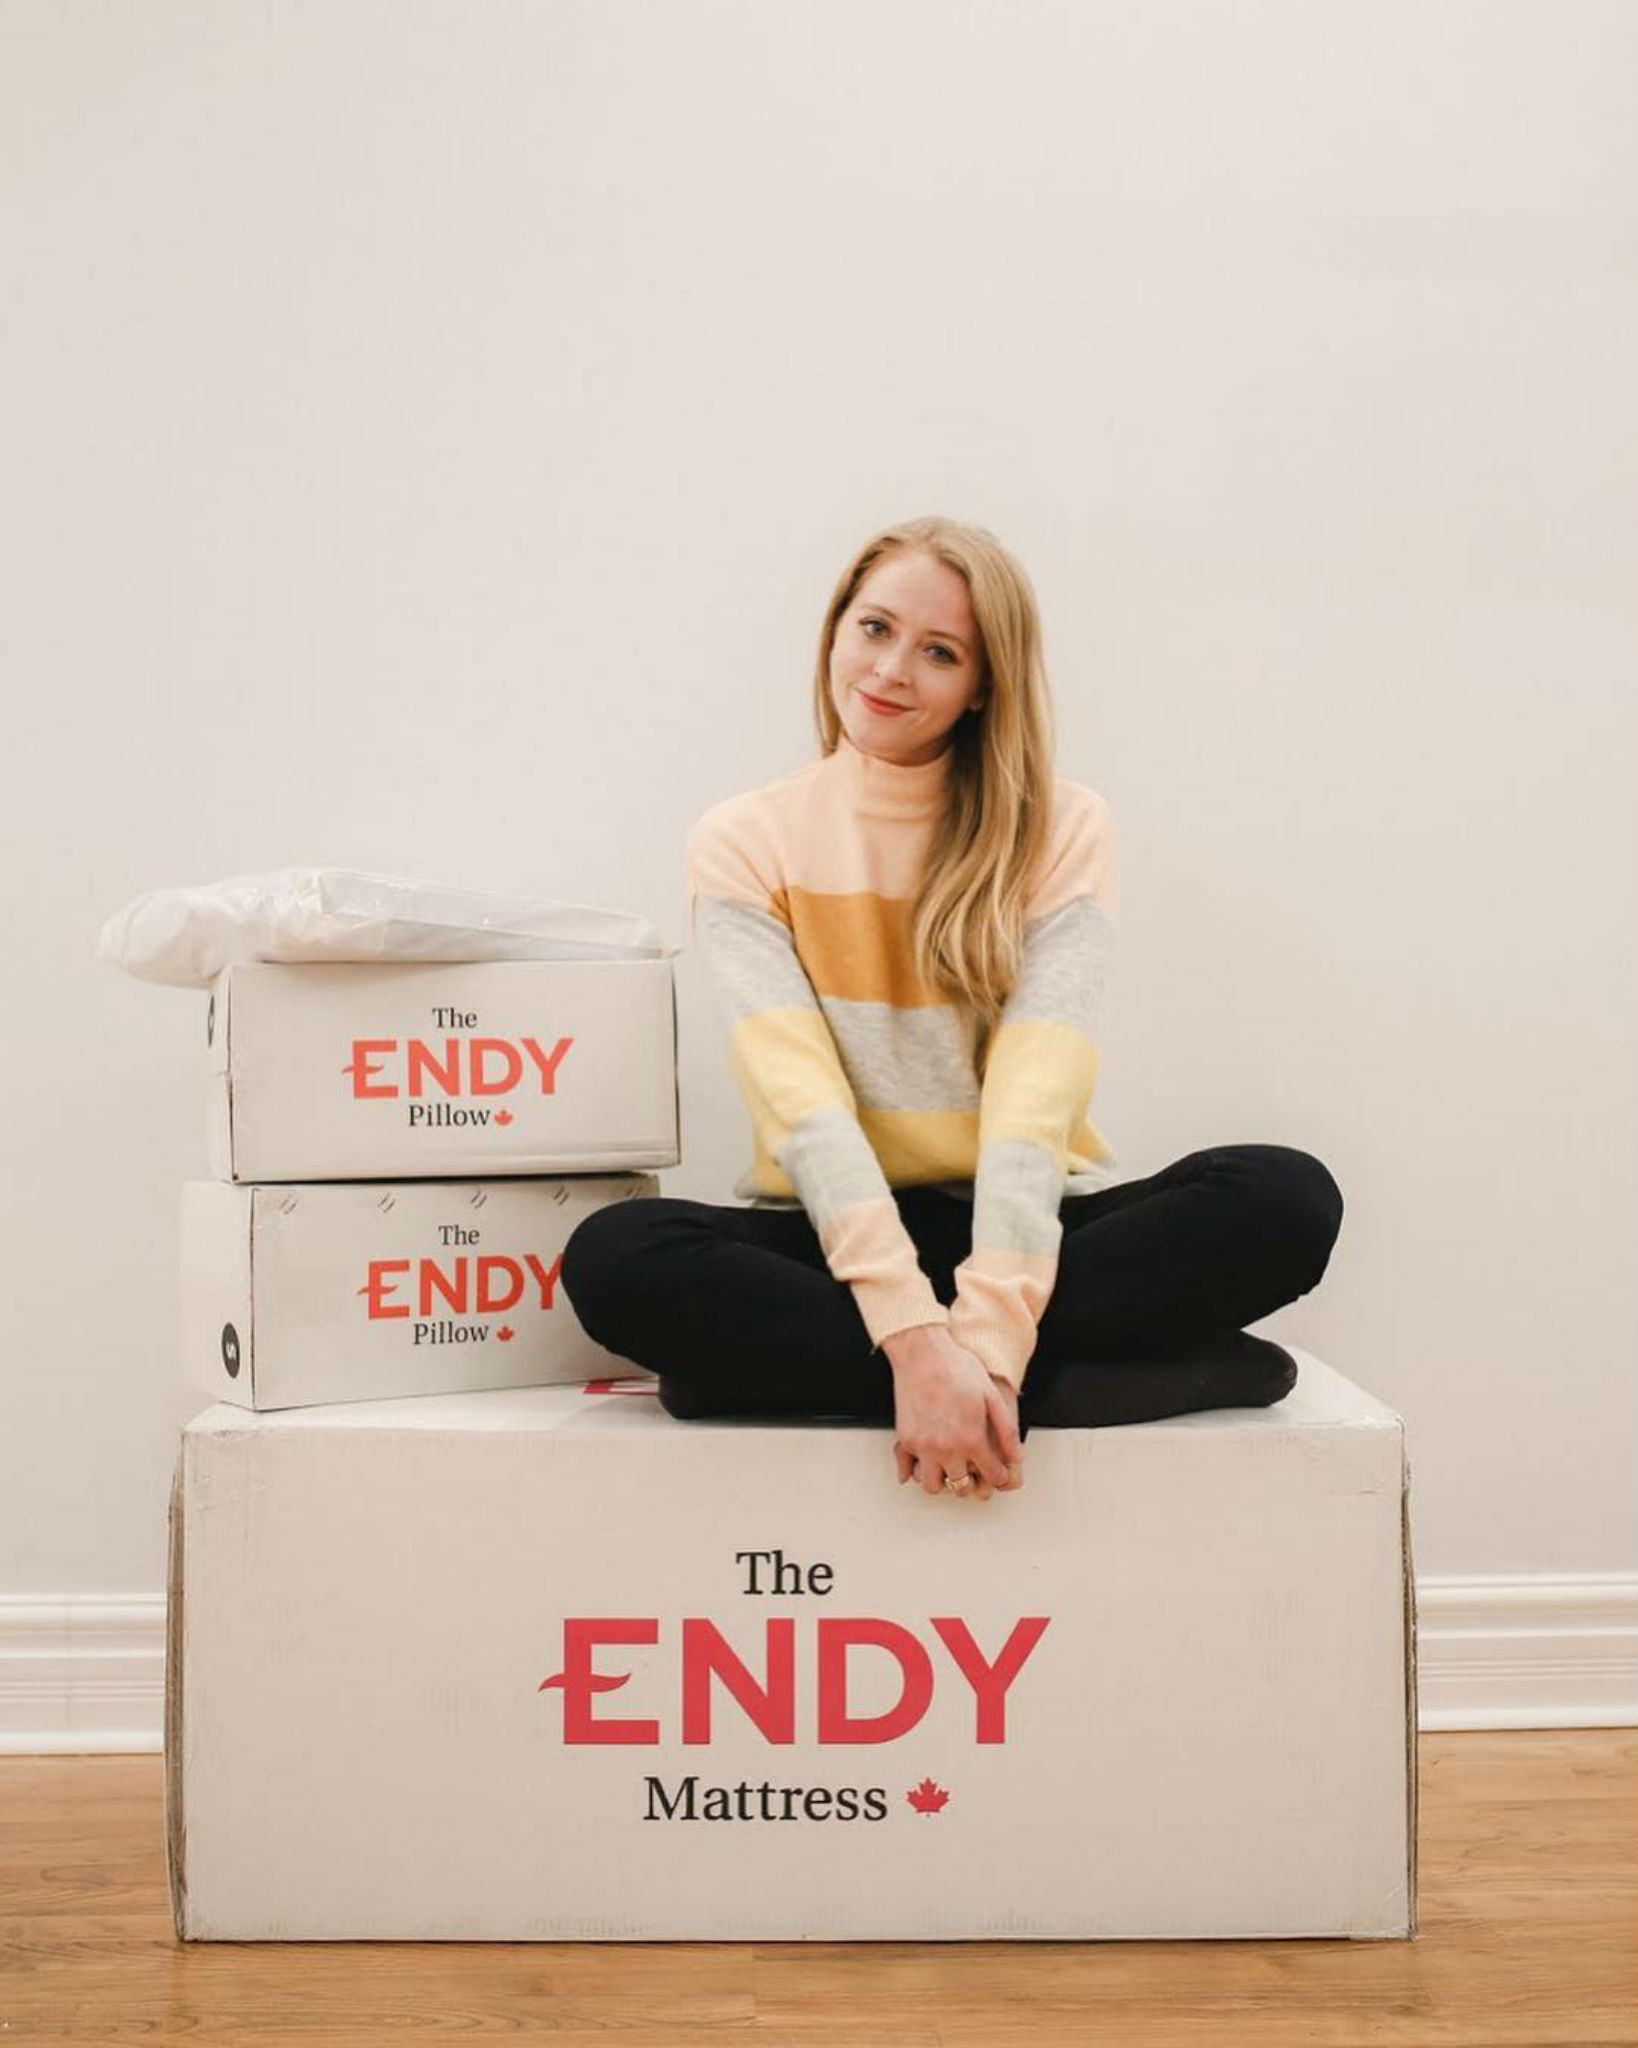 "Natalie Ast (@natalieast) - Ast is a Toronto-based lawyer who also maintains a blog dedicated to fashion, style, and travel.""New city, new apartment, new bed. So excited to be partnering with @endy to get a better night's sleep! 😴First step was getting a new bed set up. I was so impressed that the #Endy mattress came shipped in a box I could lift on my own, and that it arrived by an eco-friendly bike courier! 🚴‍♂️ I also love that the company is all Canadian, manufactured and shipped locally. 🇨🇦"""